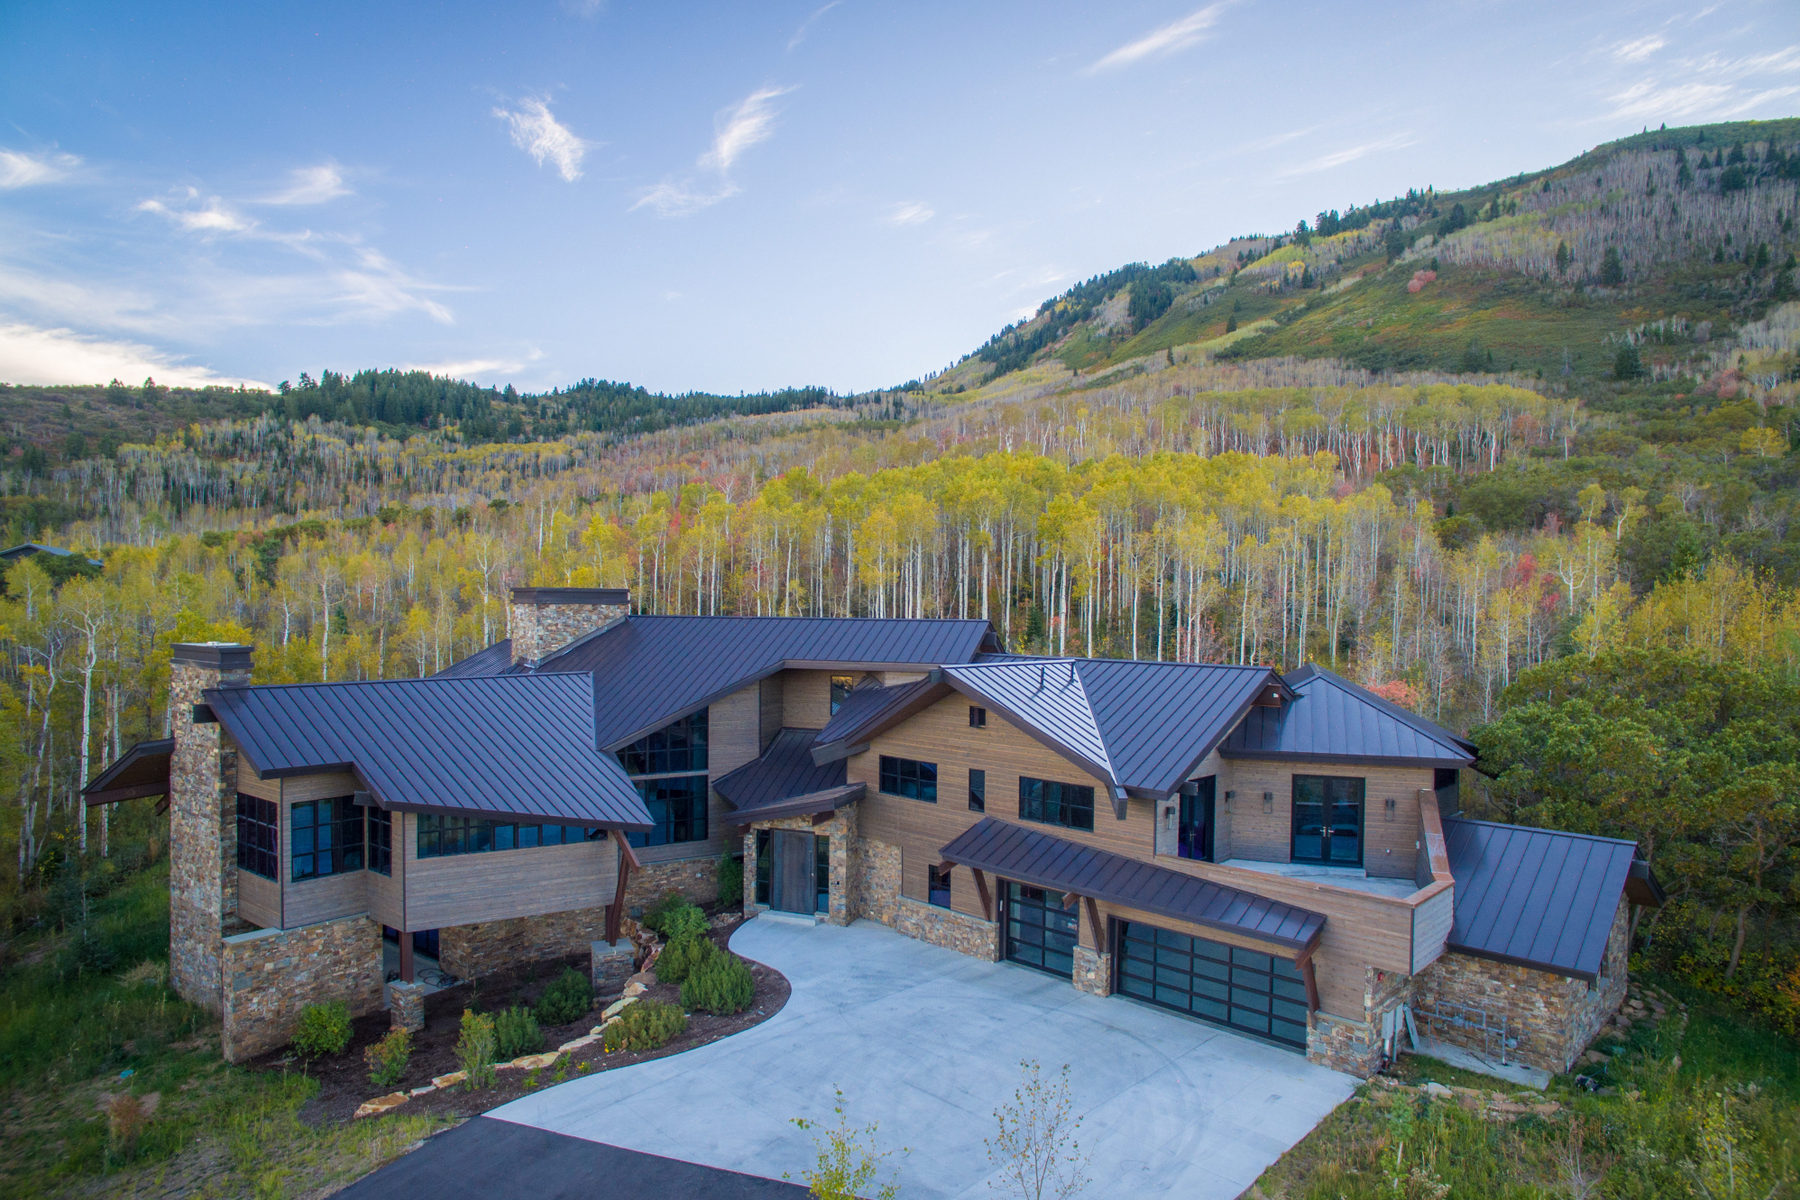 独户住宅 为 销售 在 Newly Finished Mountain Contemporary Masterpiece 21 Canyon Ct 帕克城, 犹他州, 84060 美国